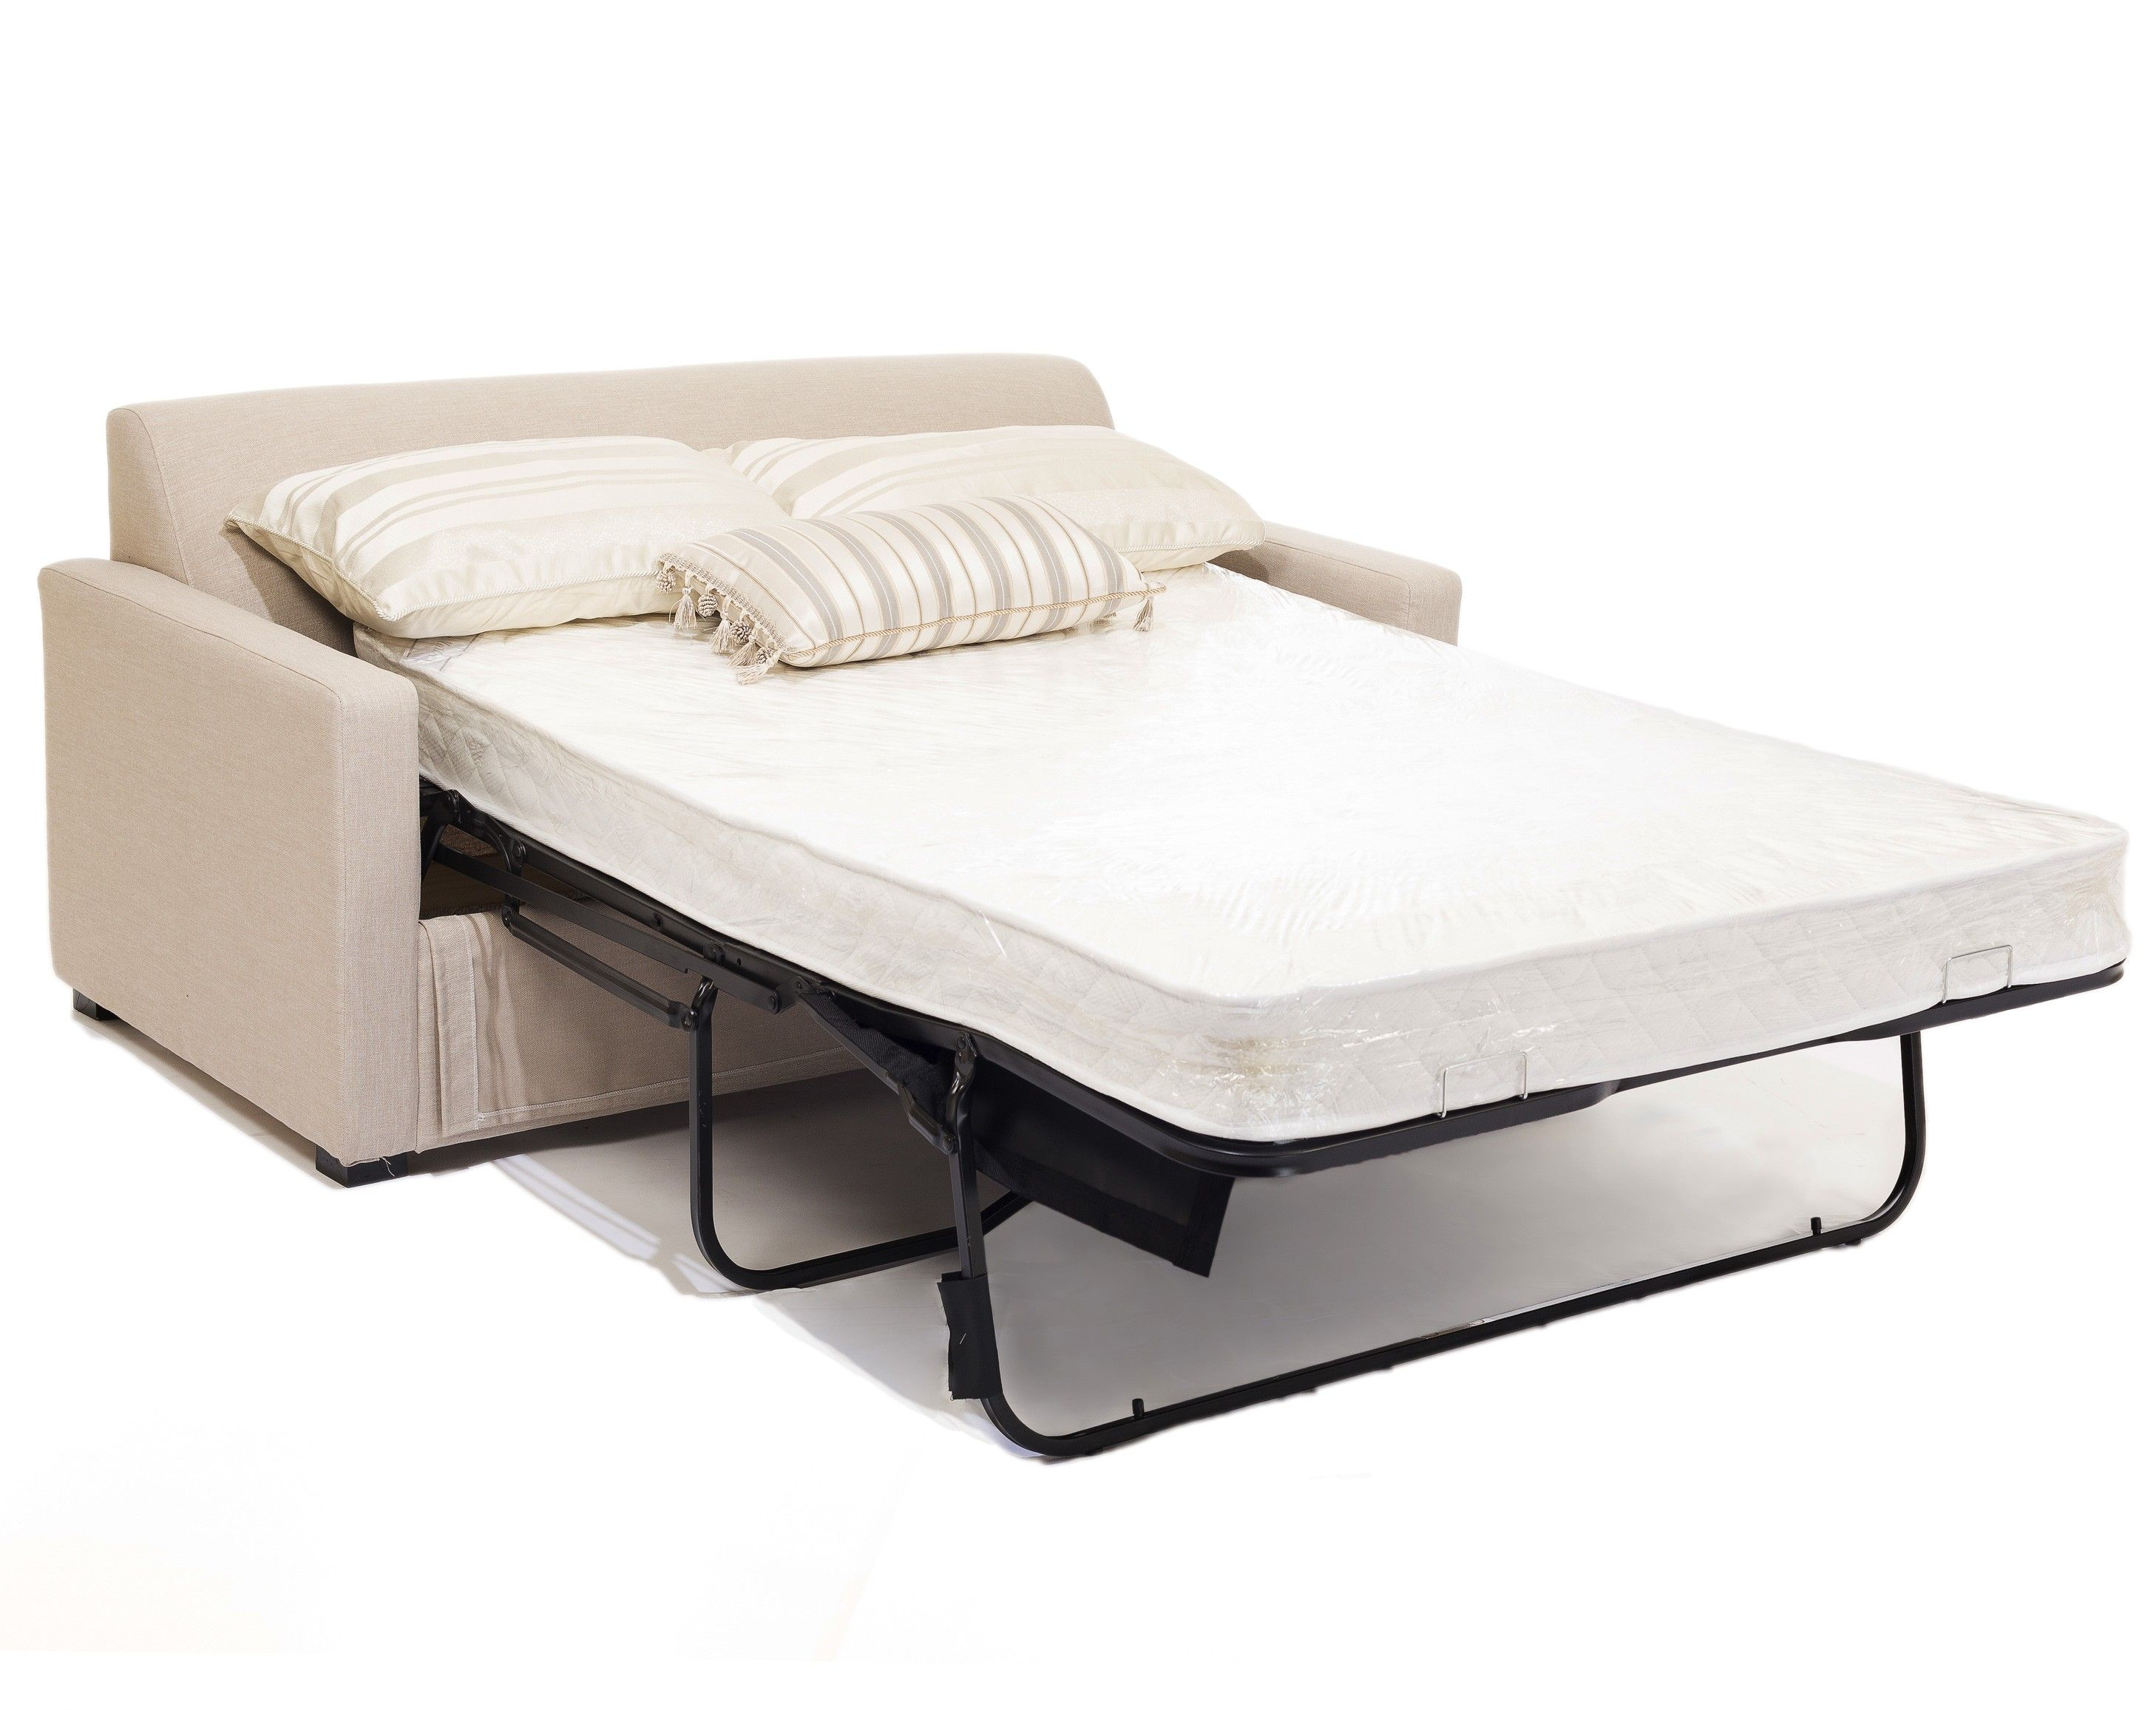 cool Mattress Sofa Fancy Mattress Sofa 92 With Additional Living